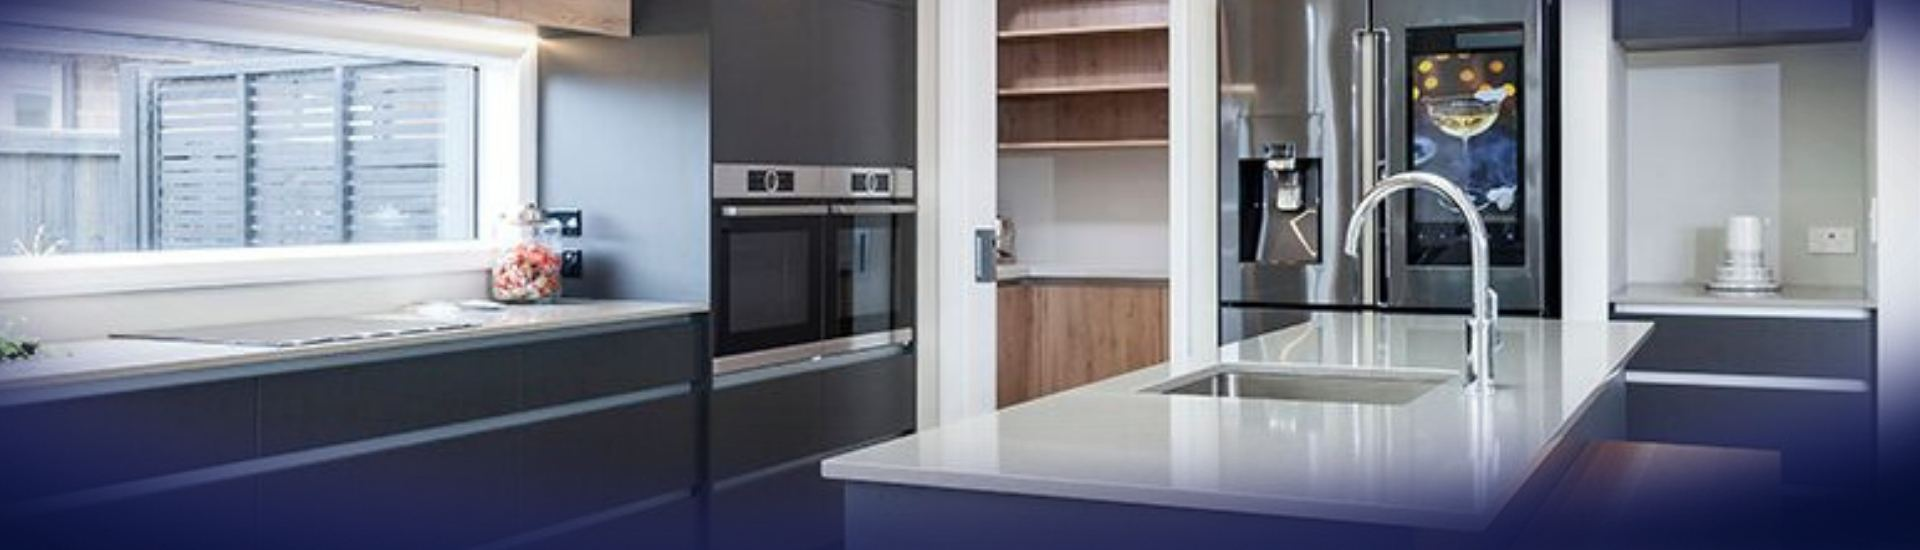 Hallmark Homes Header How to Design Kitchen 02 - How to Design a Kitchen to Suit You